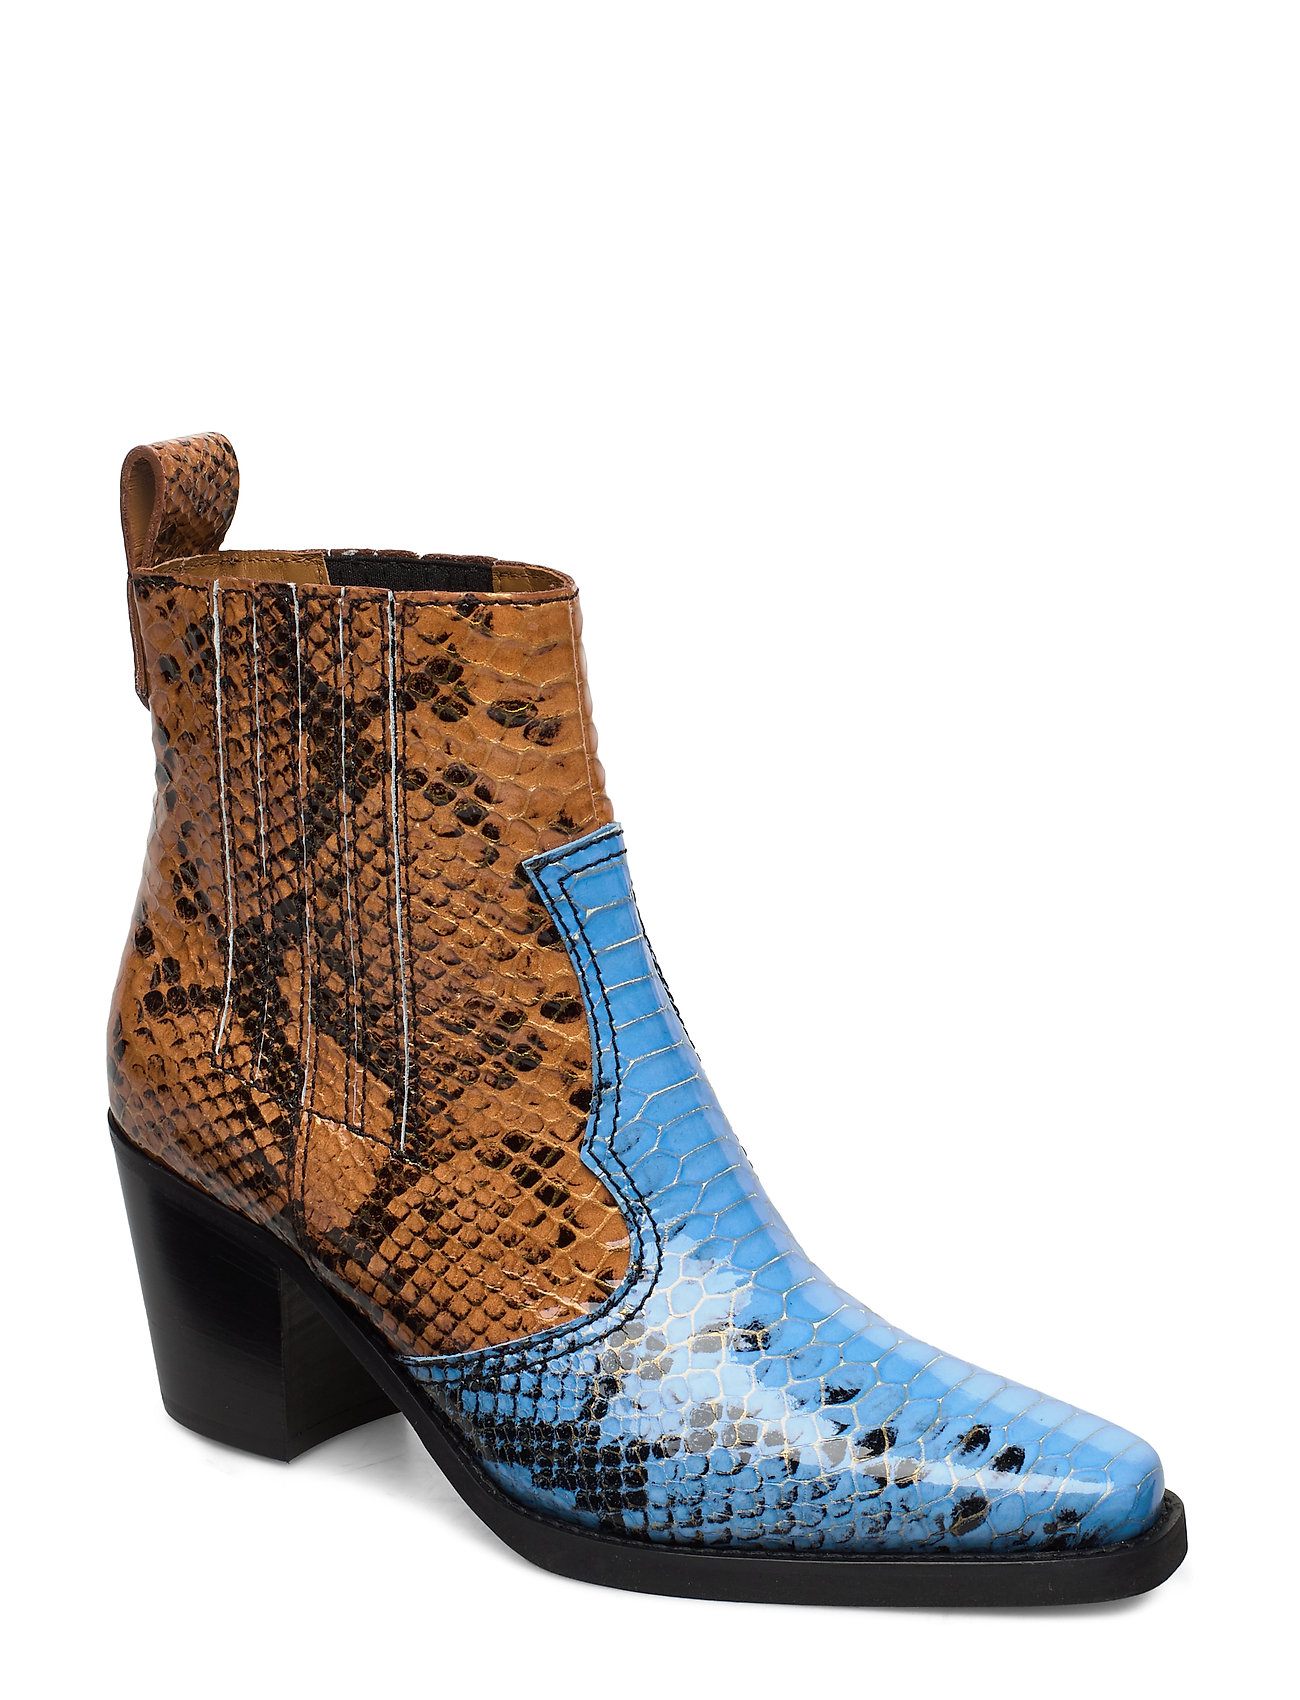 Image of Western Ankle Boots Shoes Boots Ankle Boots Ankle Boots With Heel Brun Ganni (3349215845)